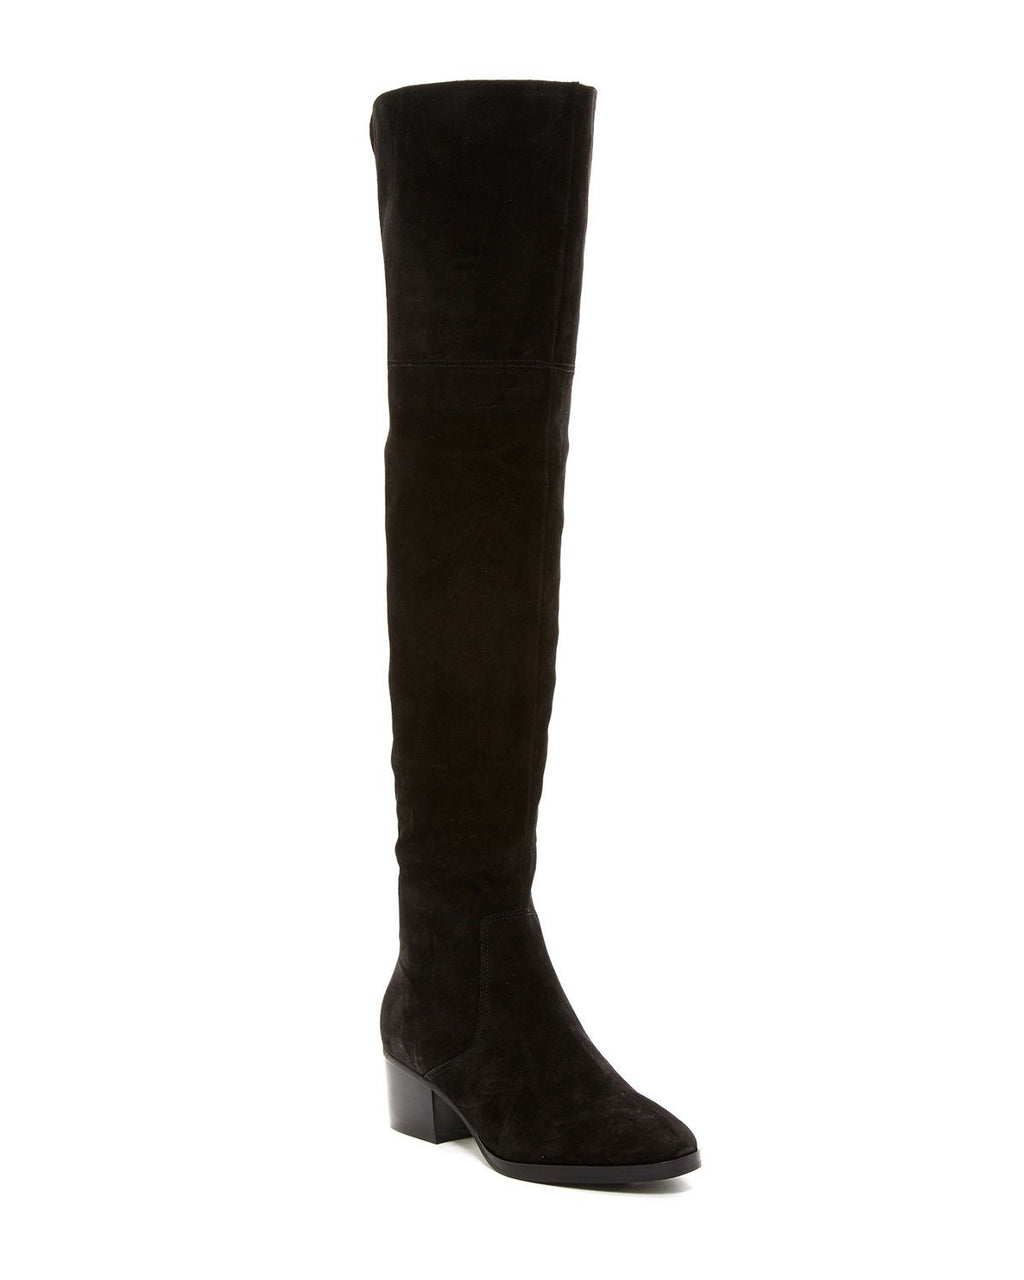 Via Spiga Ophira Over-the-Knee Boot